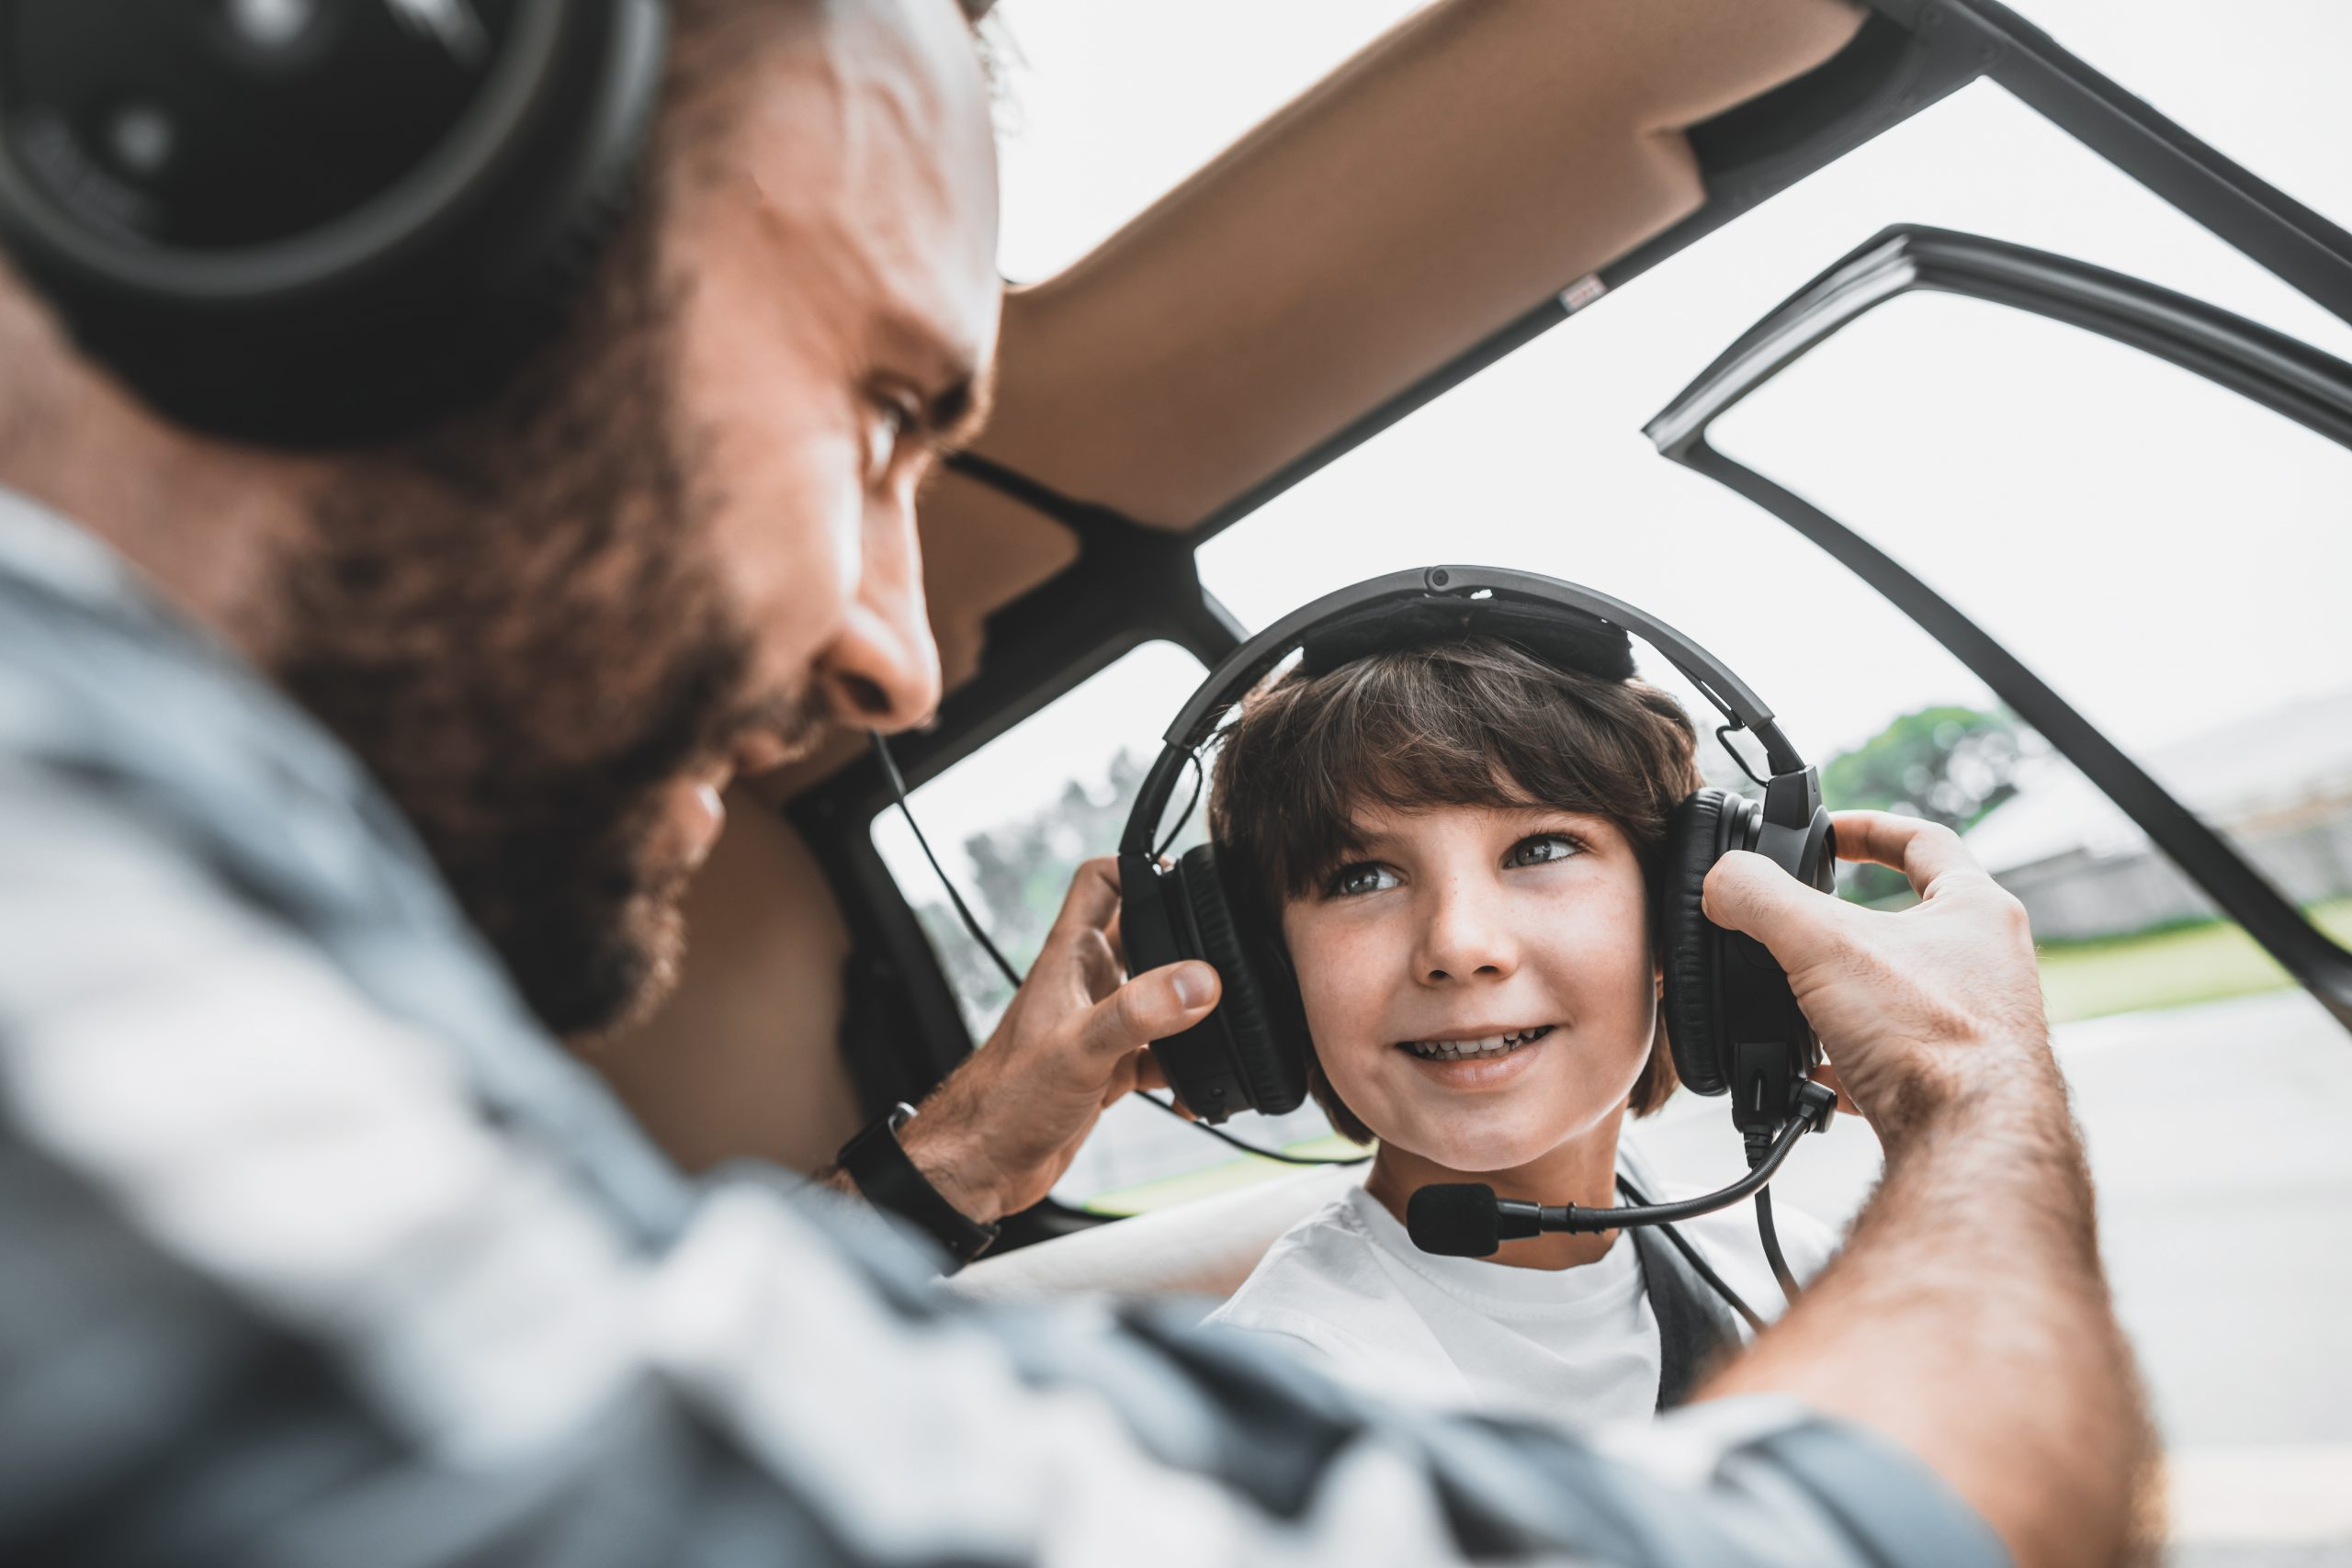 Helicopter Experience Gifts